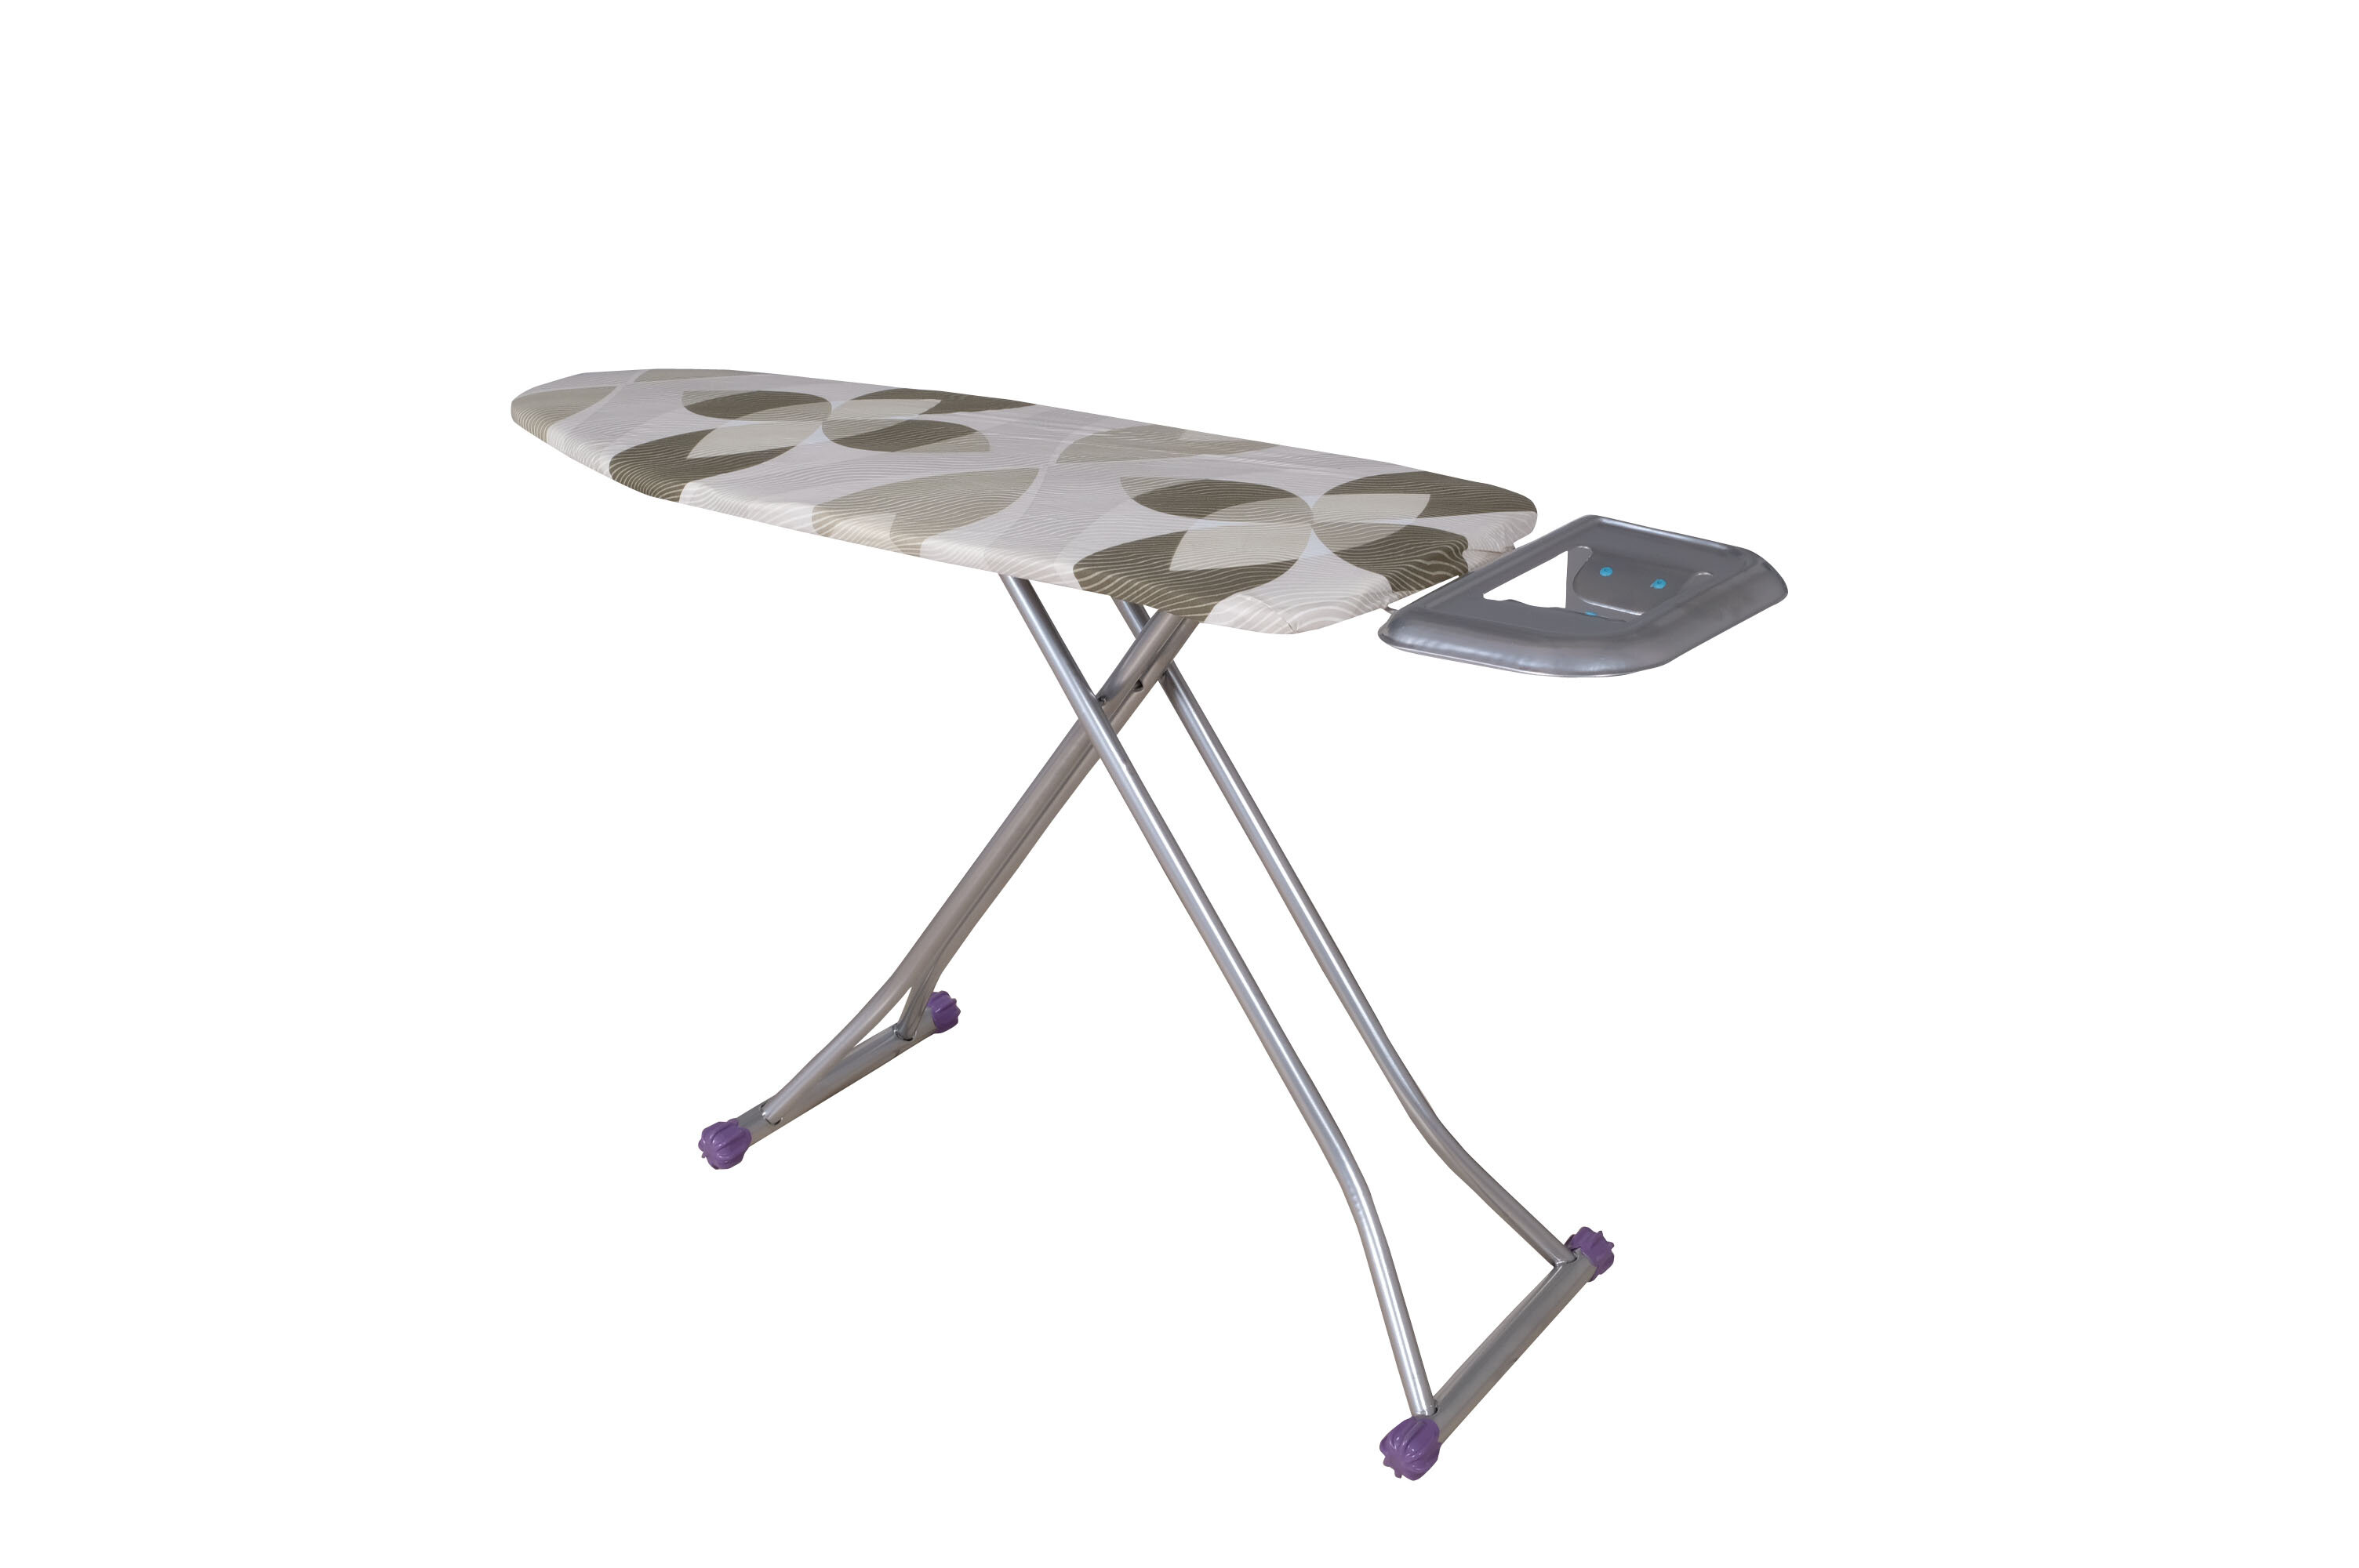 Homedora Discountworld Freestanding Ironing Board Wayfair